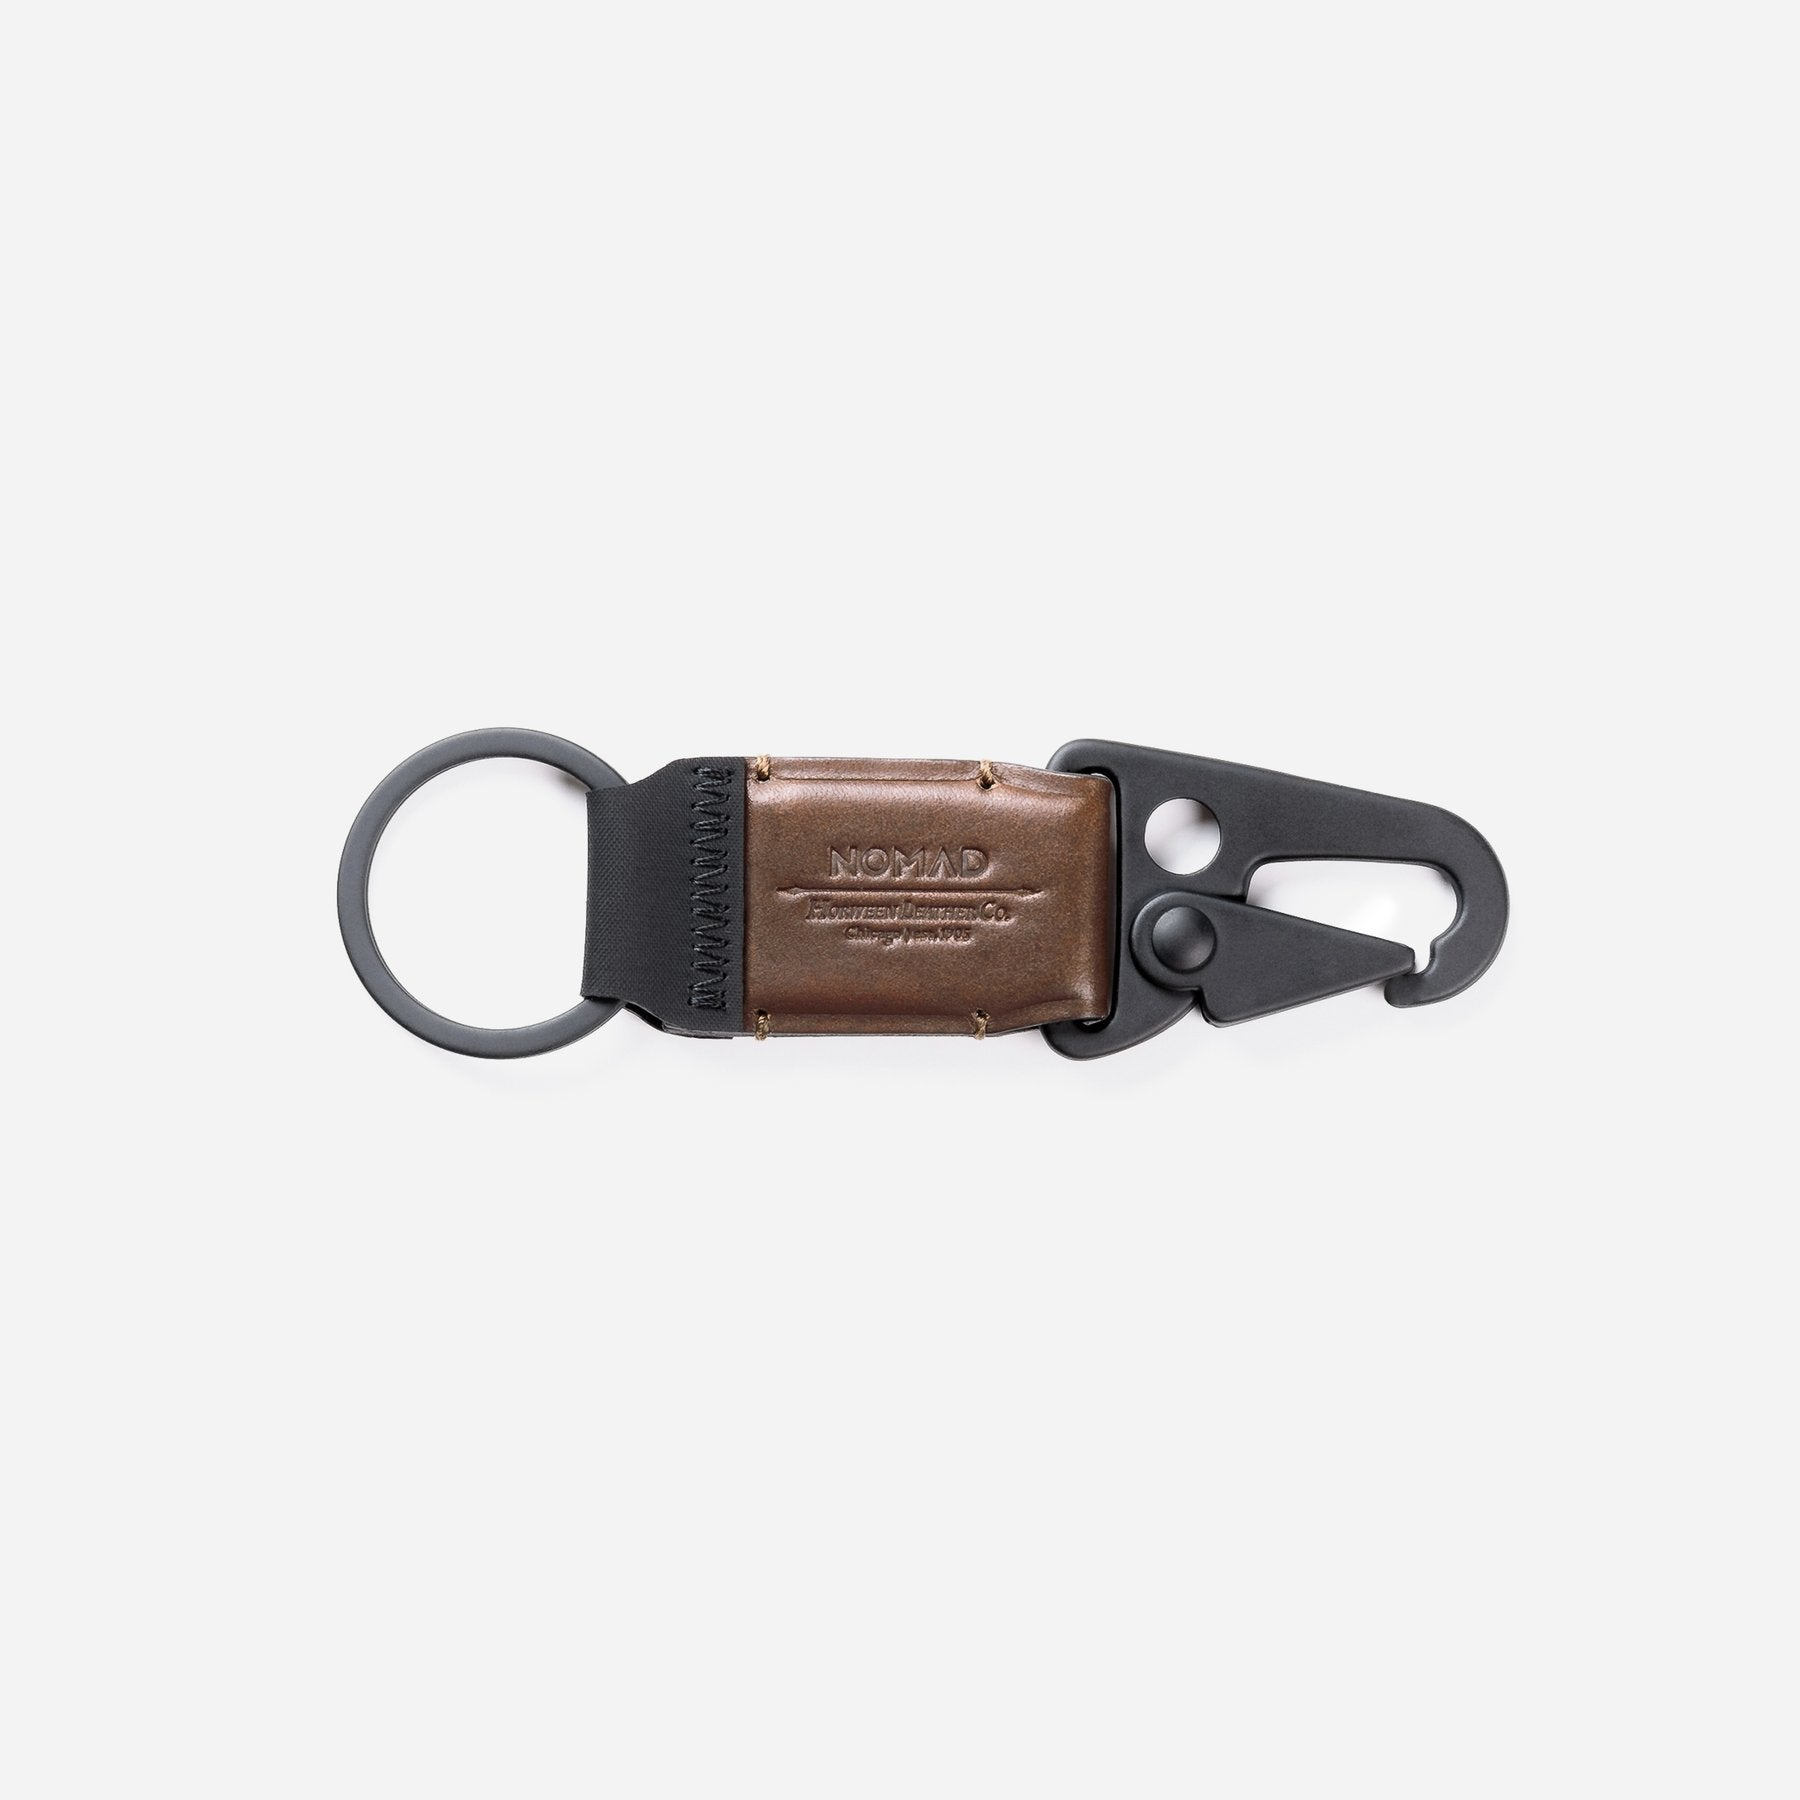 Nomad Leather Key Clip 真皮鑰匙扣 - UNWIRE STORE - HONG KONG